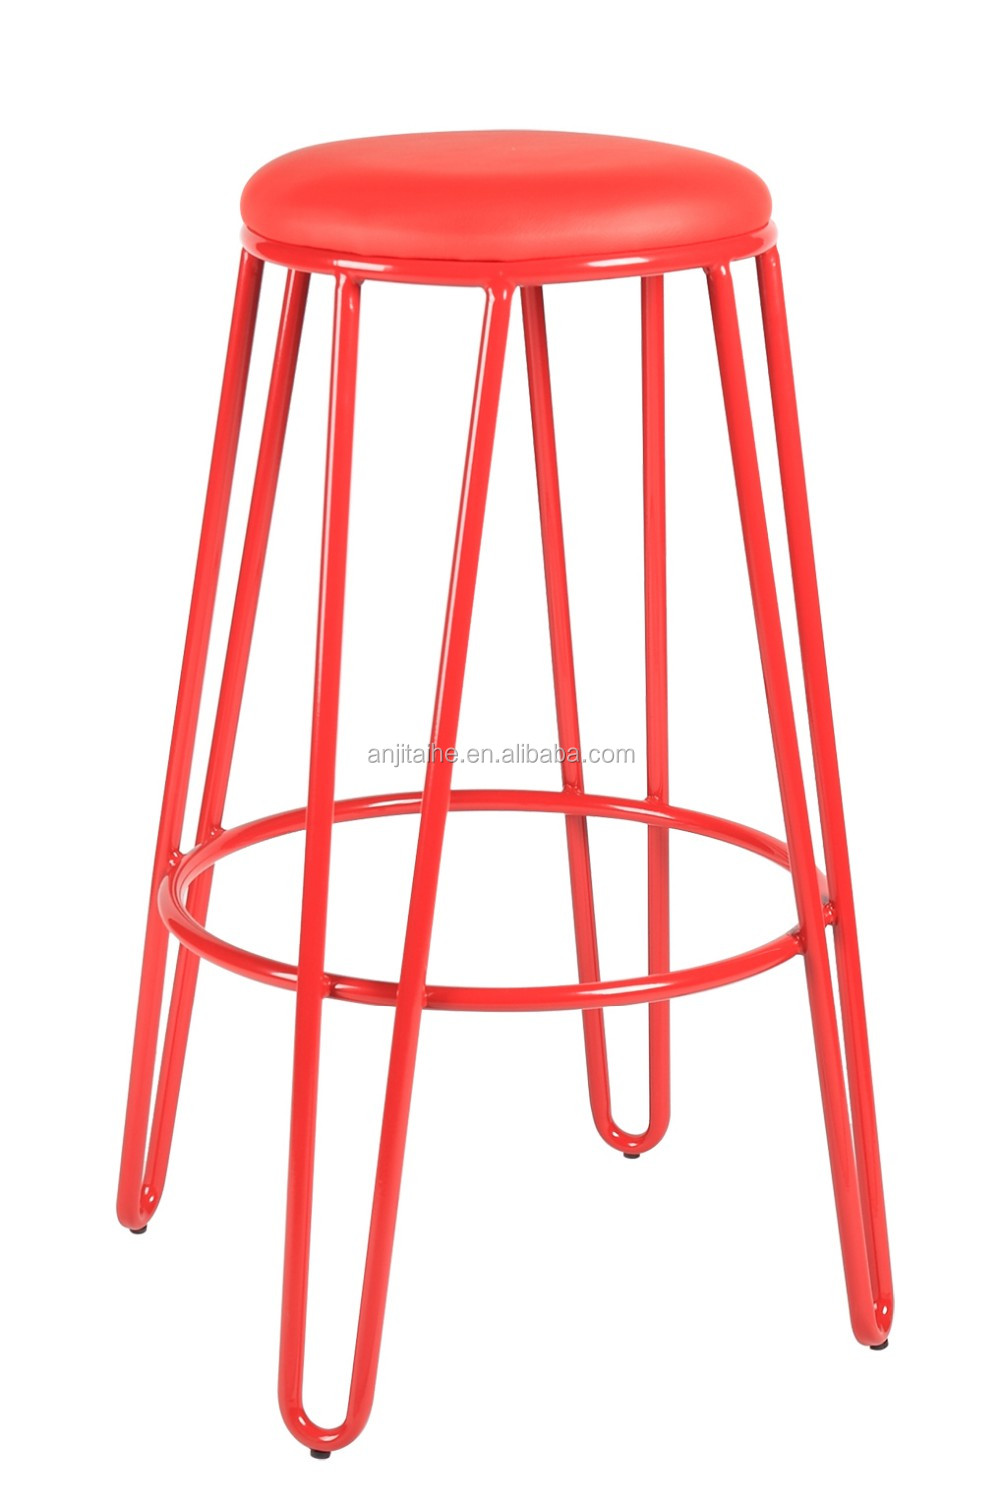 Hot Sell Wood Stool With Metal Legs Bar Stool Pu Seat